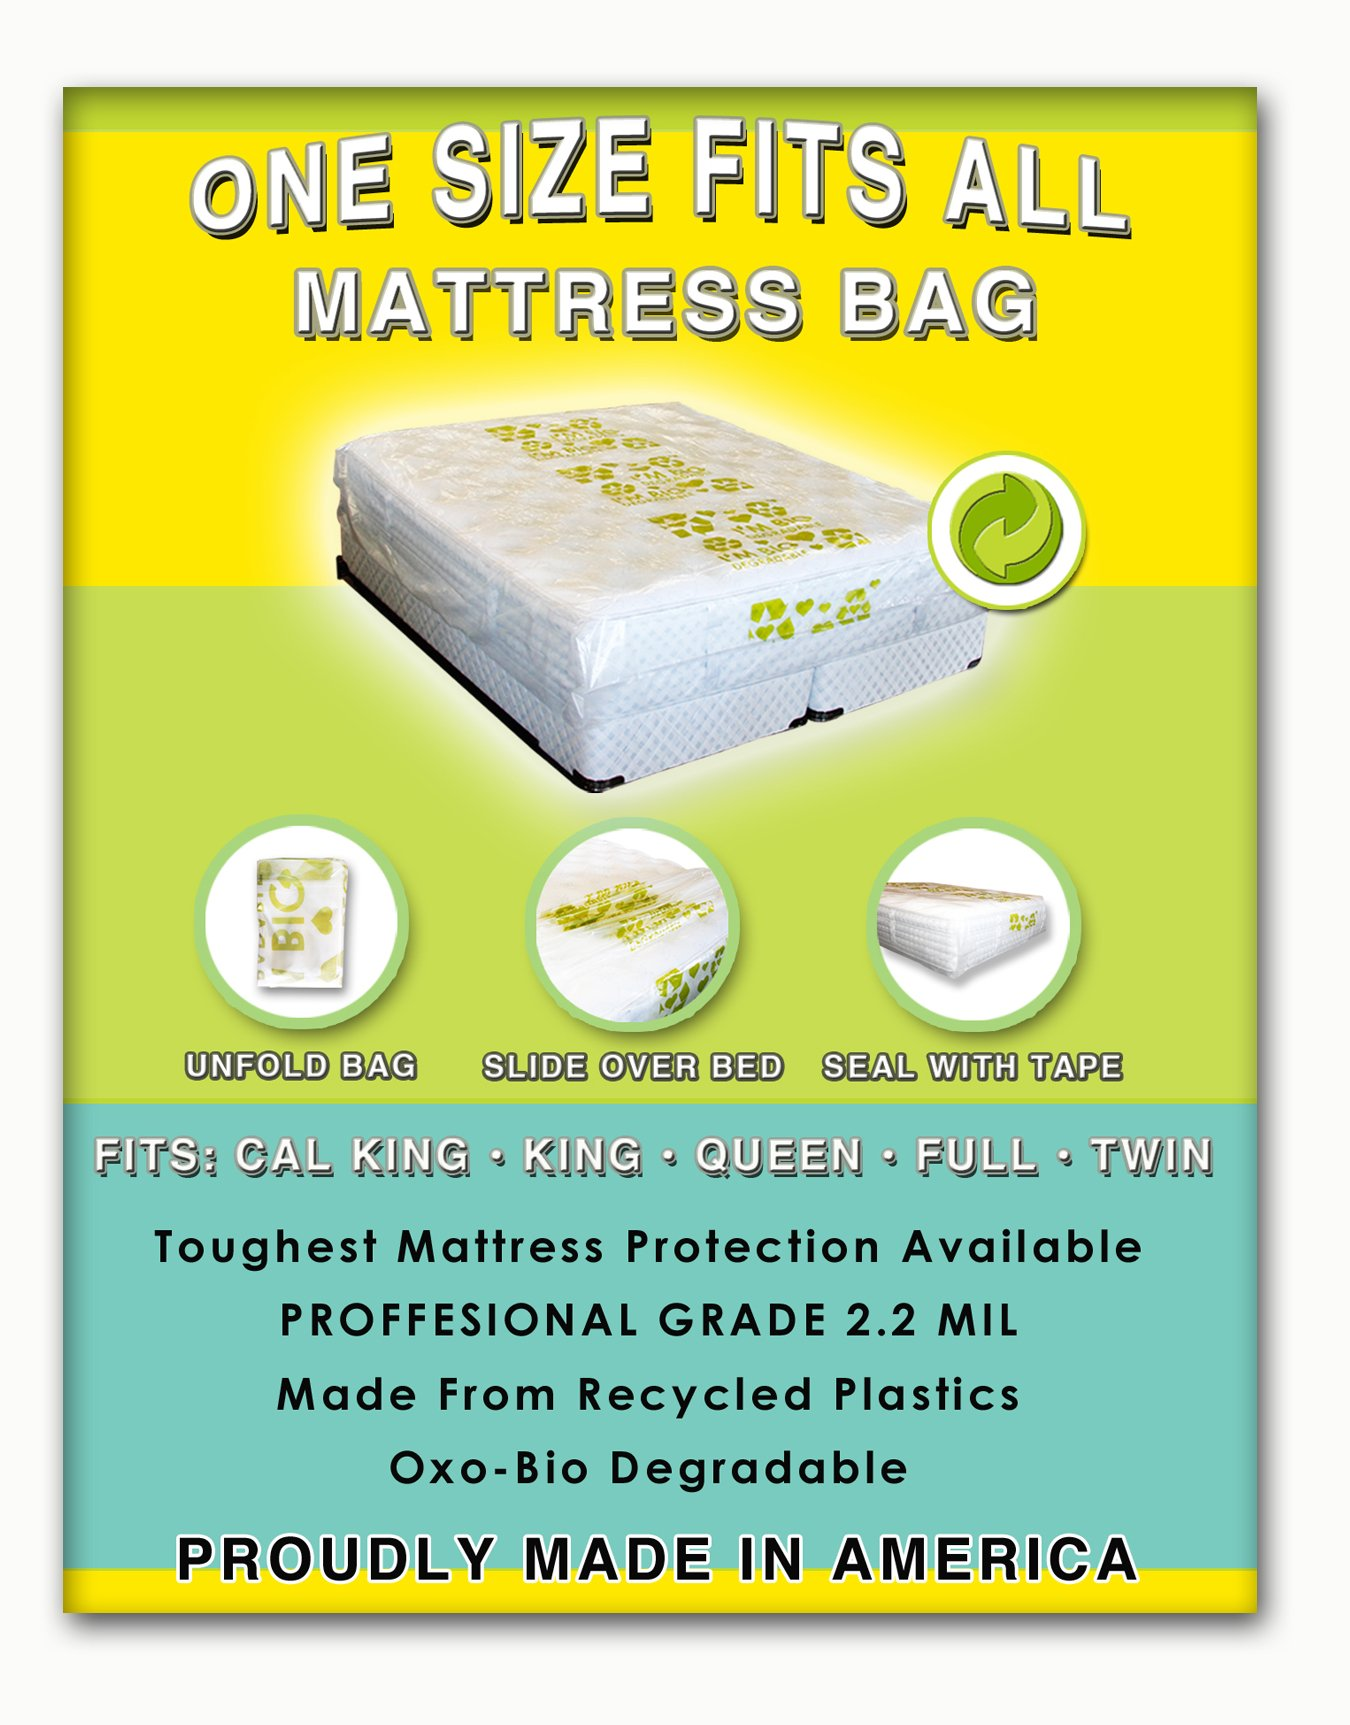 1 Size Fits All Mattresses. Compatible with All Pillow Tops and Box Springs. Ideal for Moving, Storage, Protection and Peace of Mind. Don't Let the Bed Bite. Protect Your Investment with Our American Made, World Famous Eco Friendly Mattress Bag!